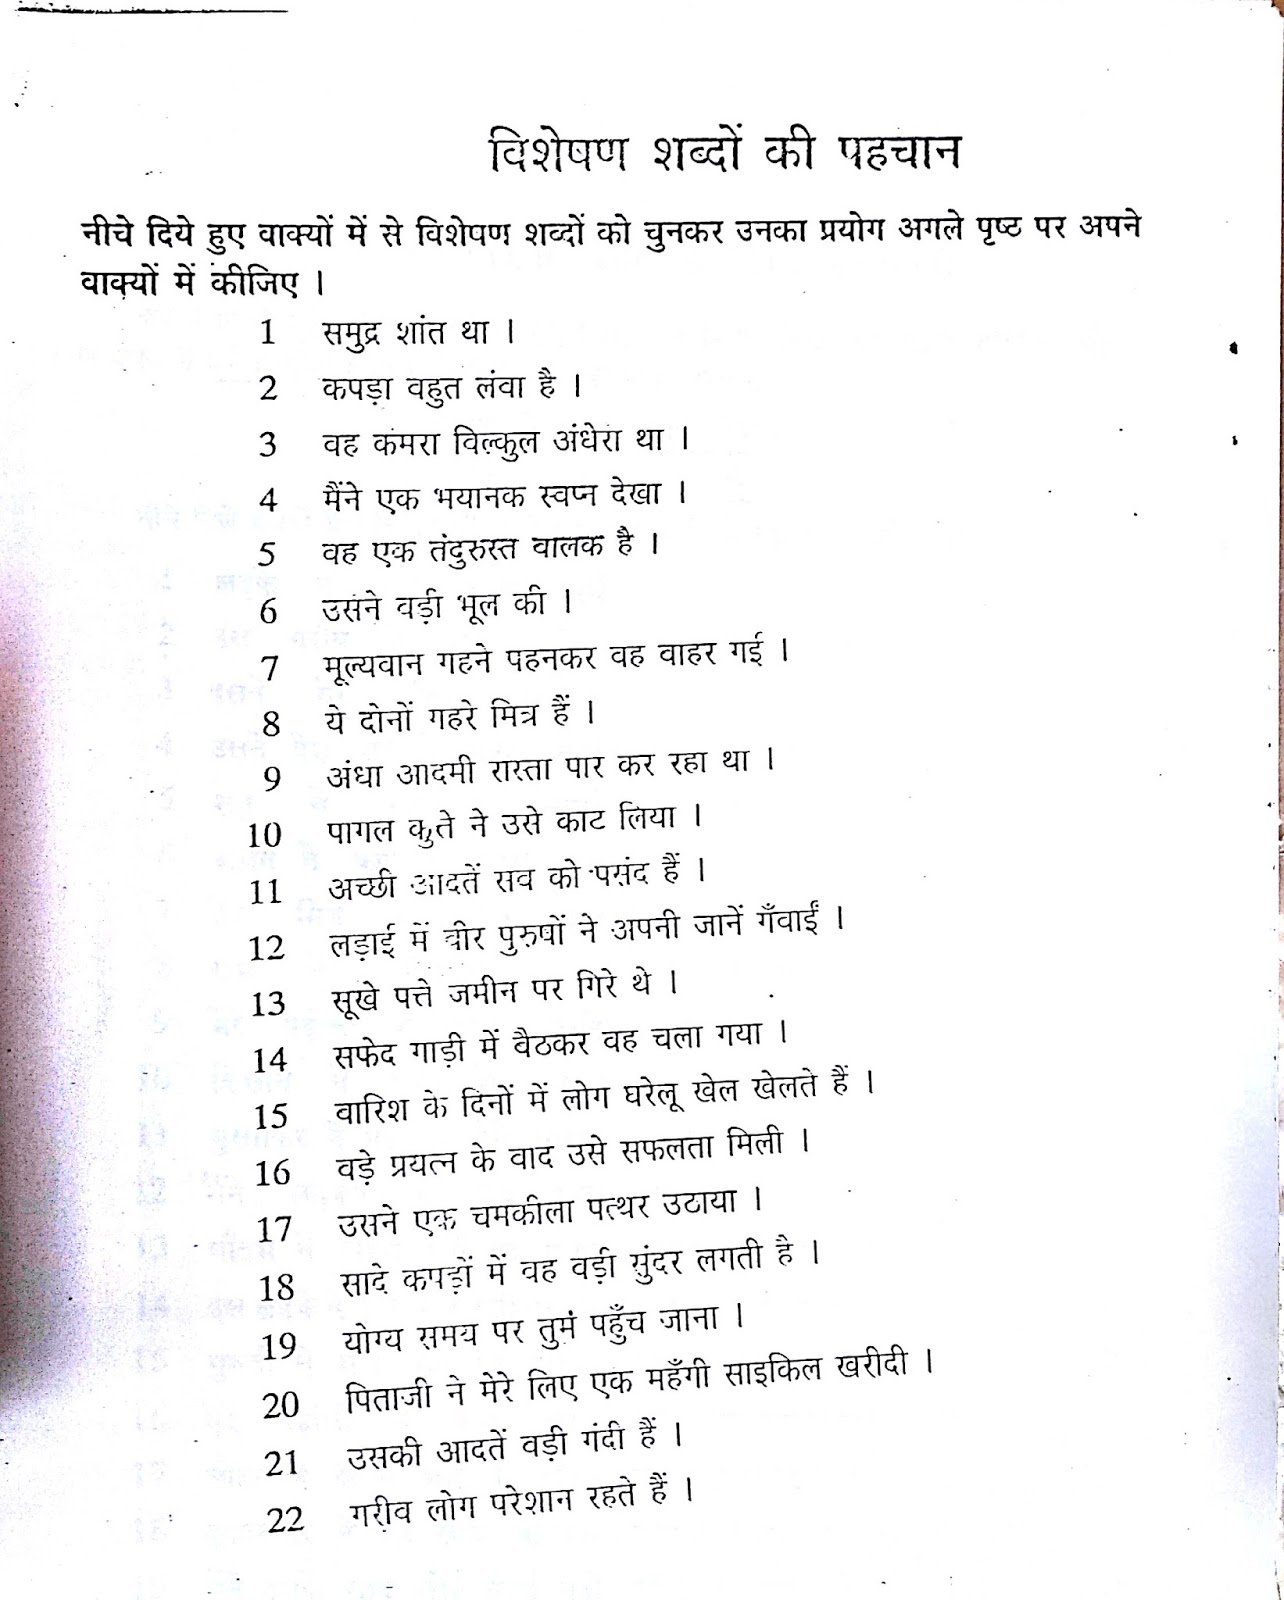 Hindi Grammar Work Sheet Collection for Classes 5,6, 7 & 8 ...